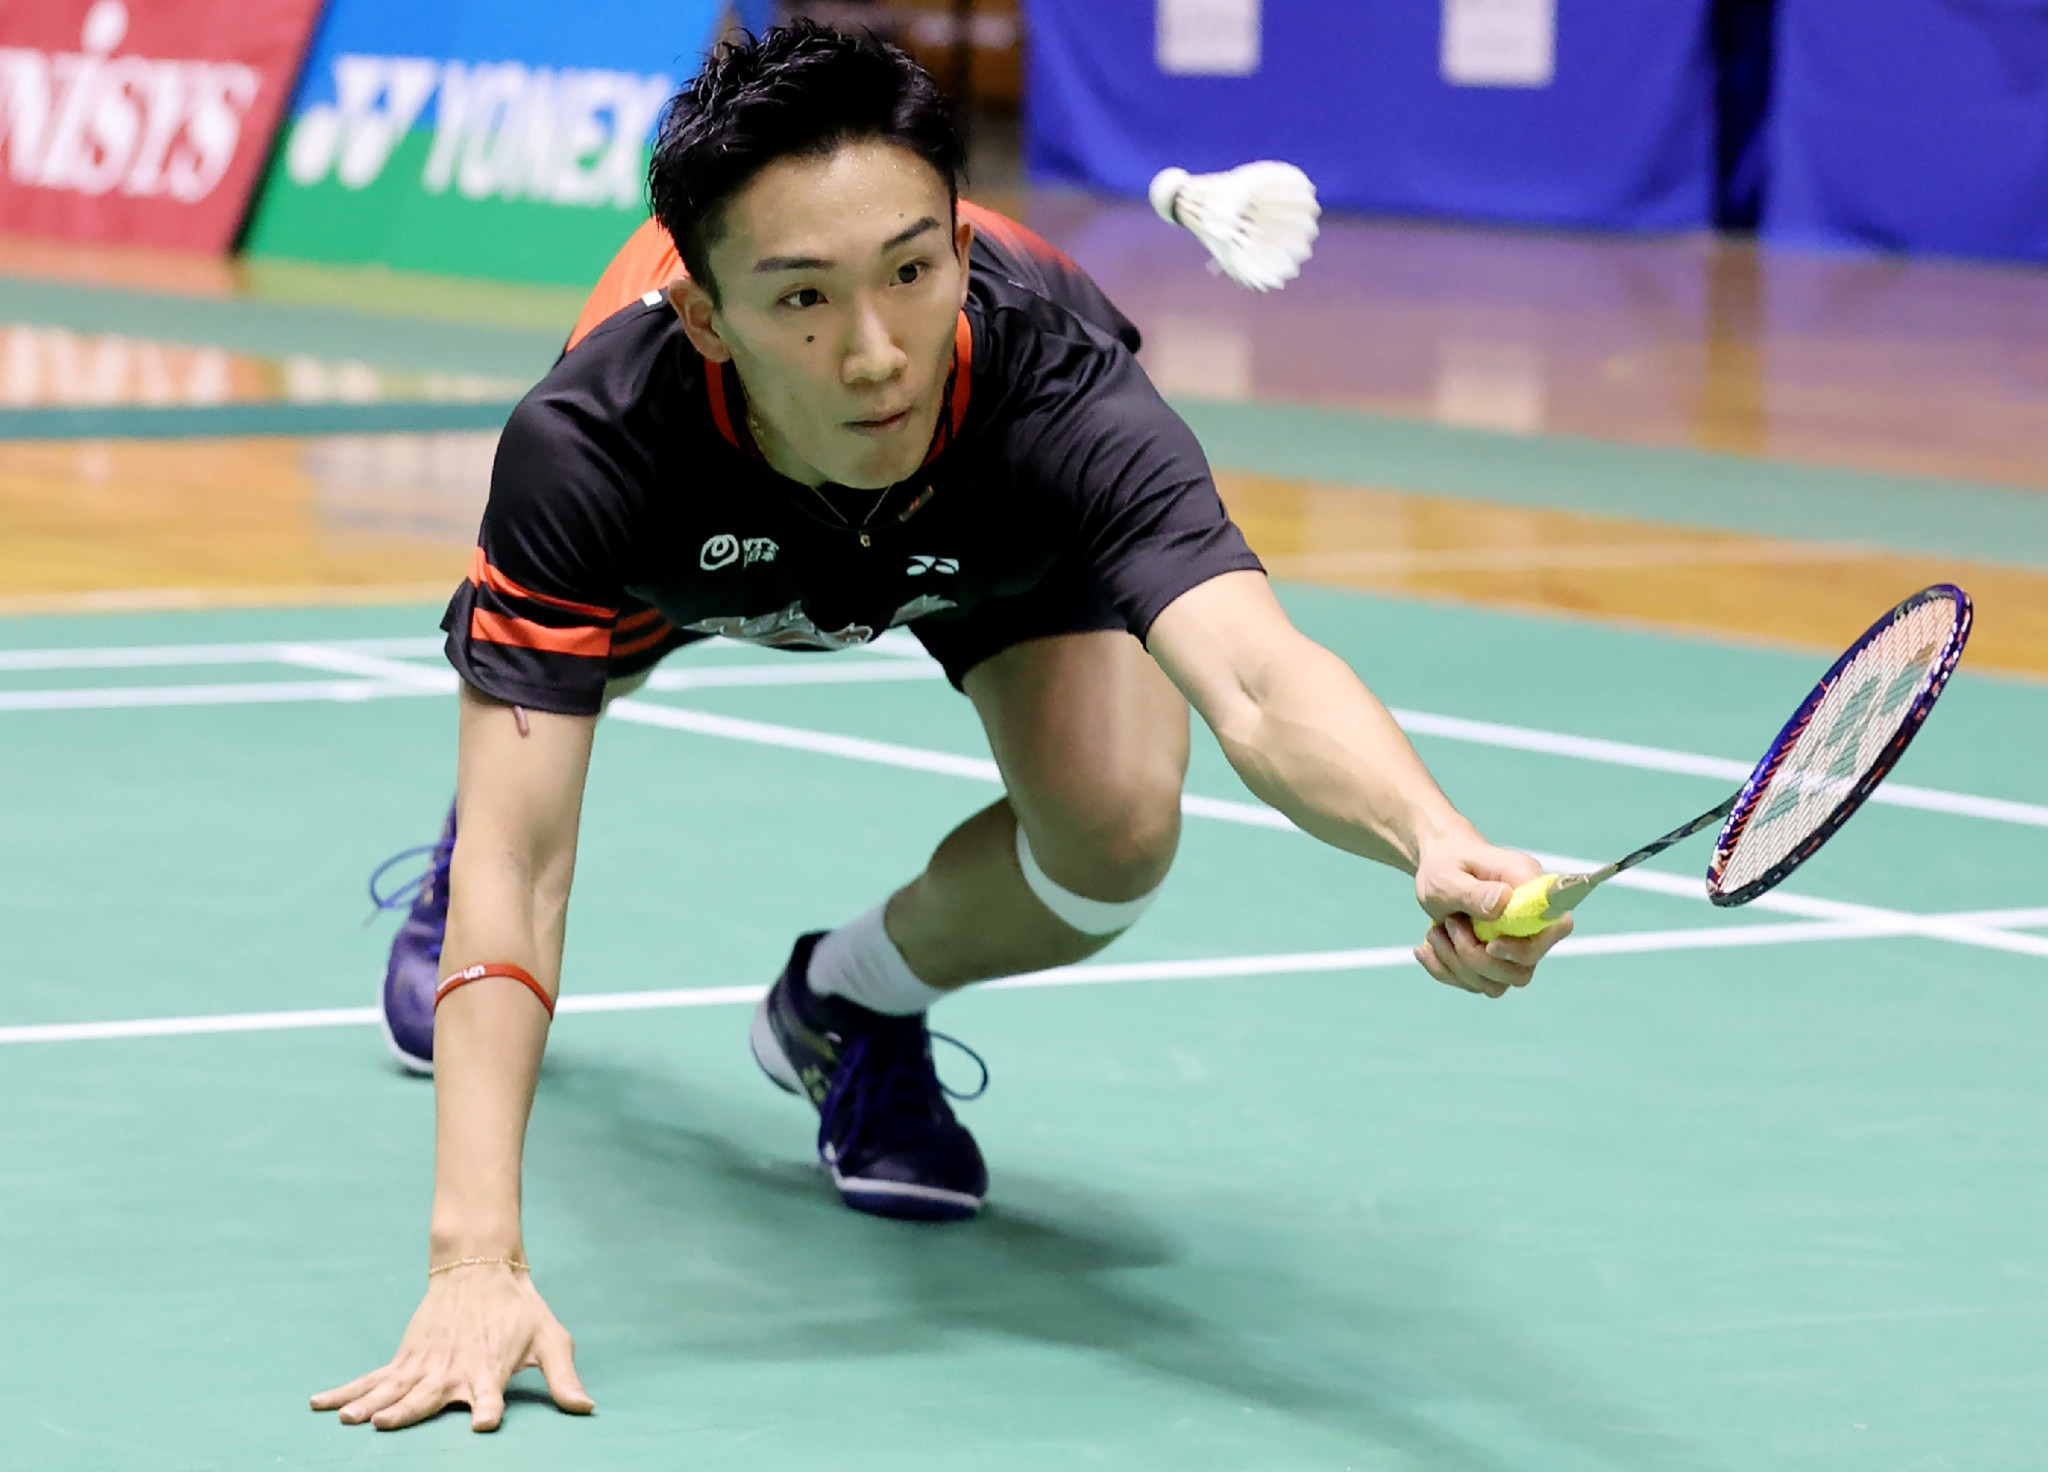 Japan's Kento Momota is set to return to action after recovering from coronavirus ©Getty Images